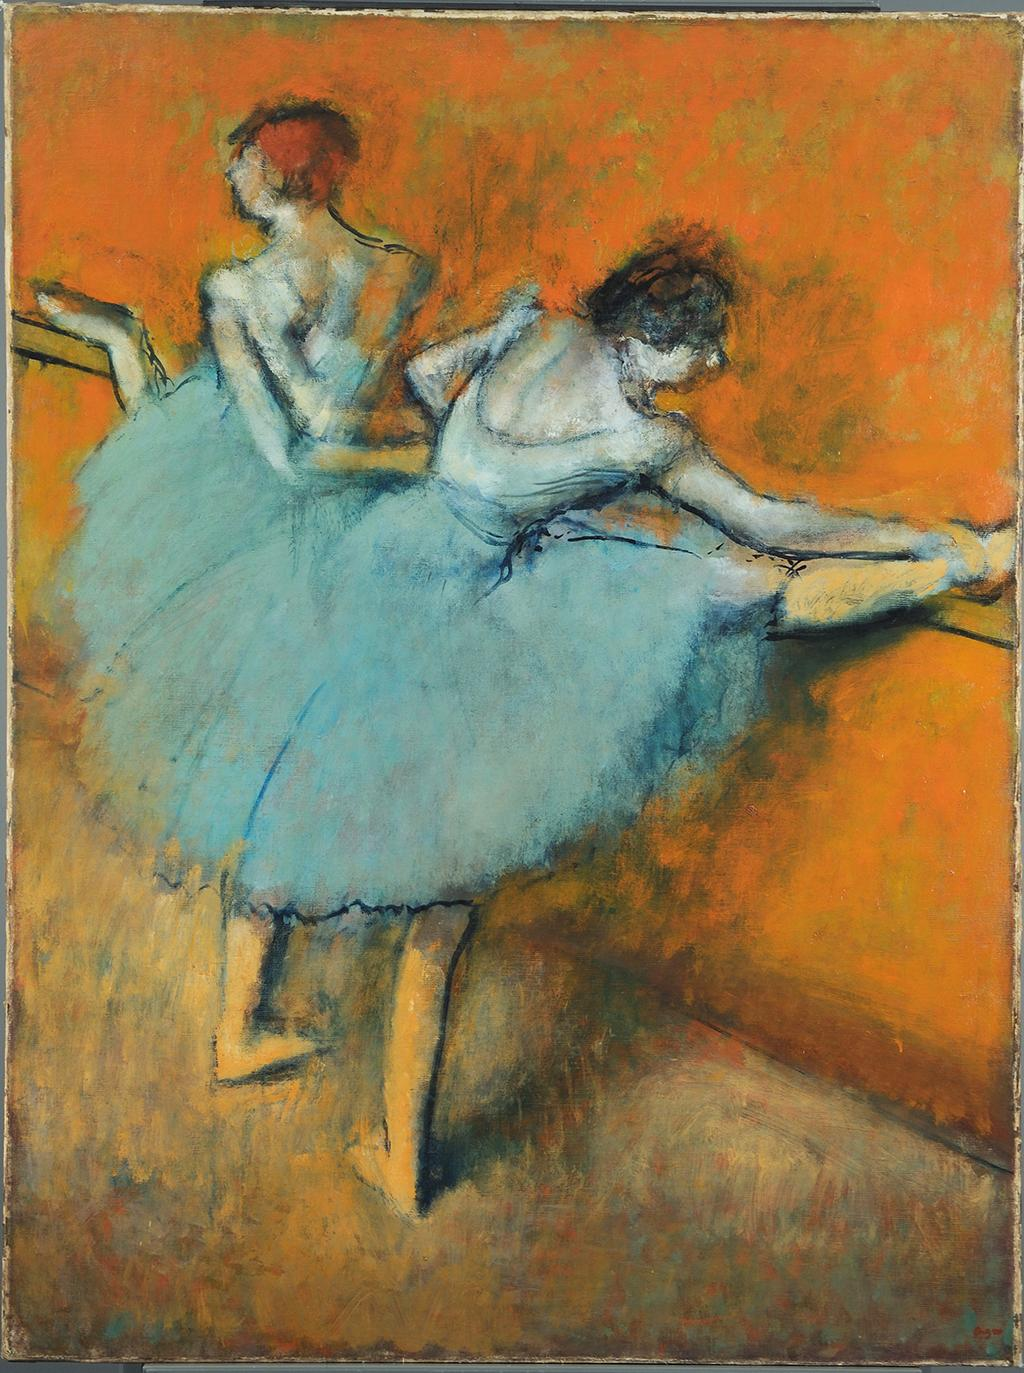 Edgar Degas, Dancers at the Barre, early 1880s-c. 1900